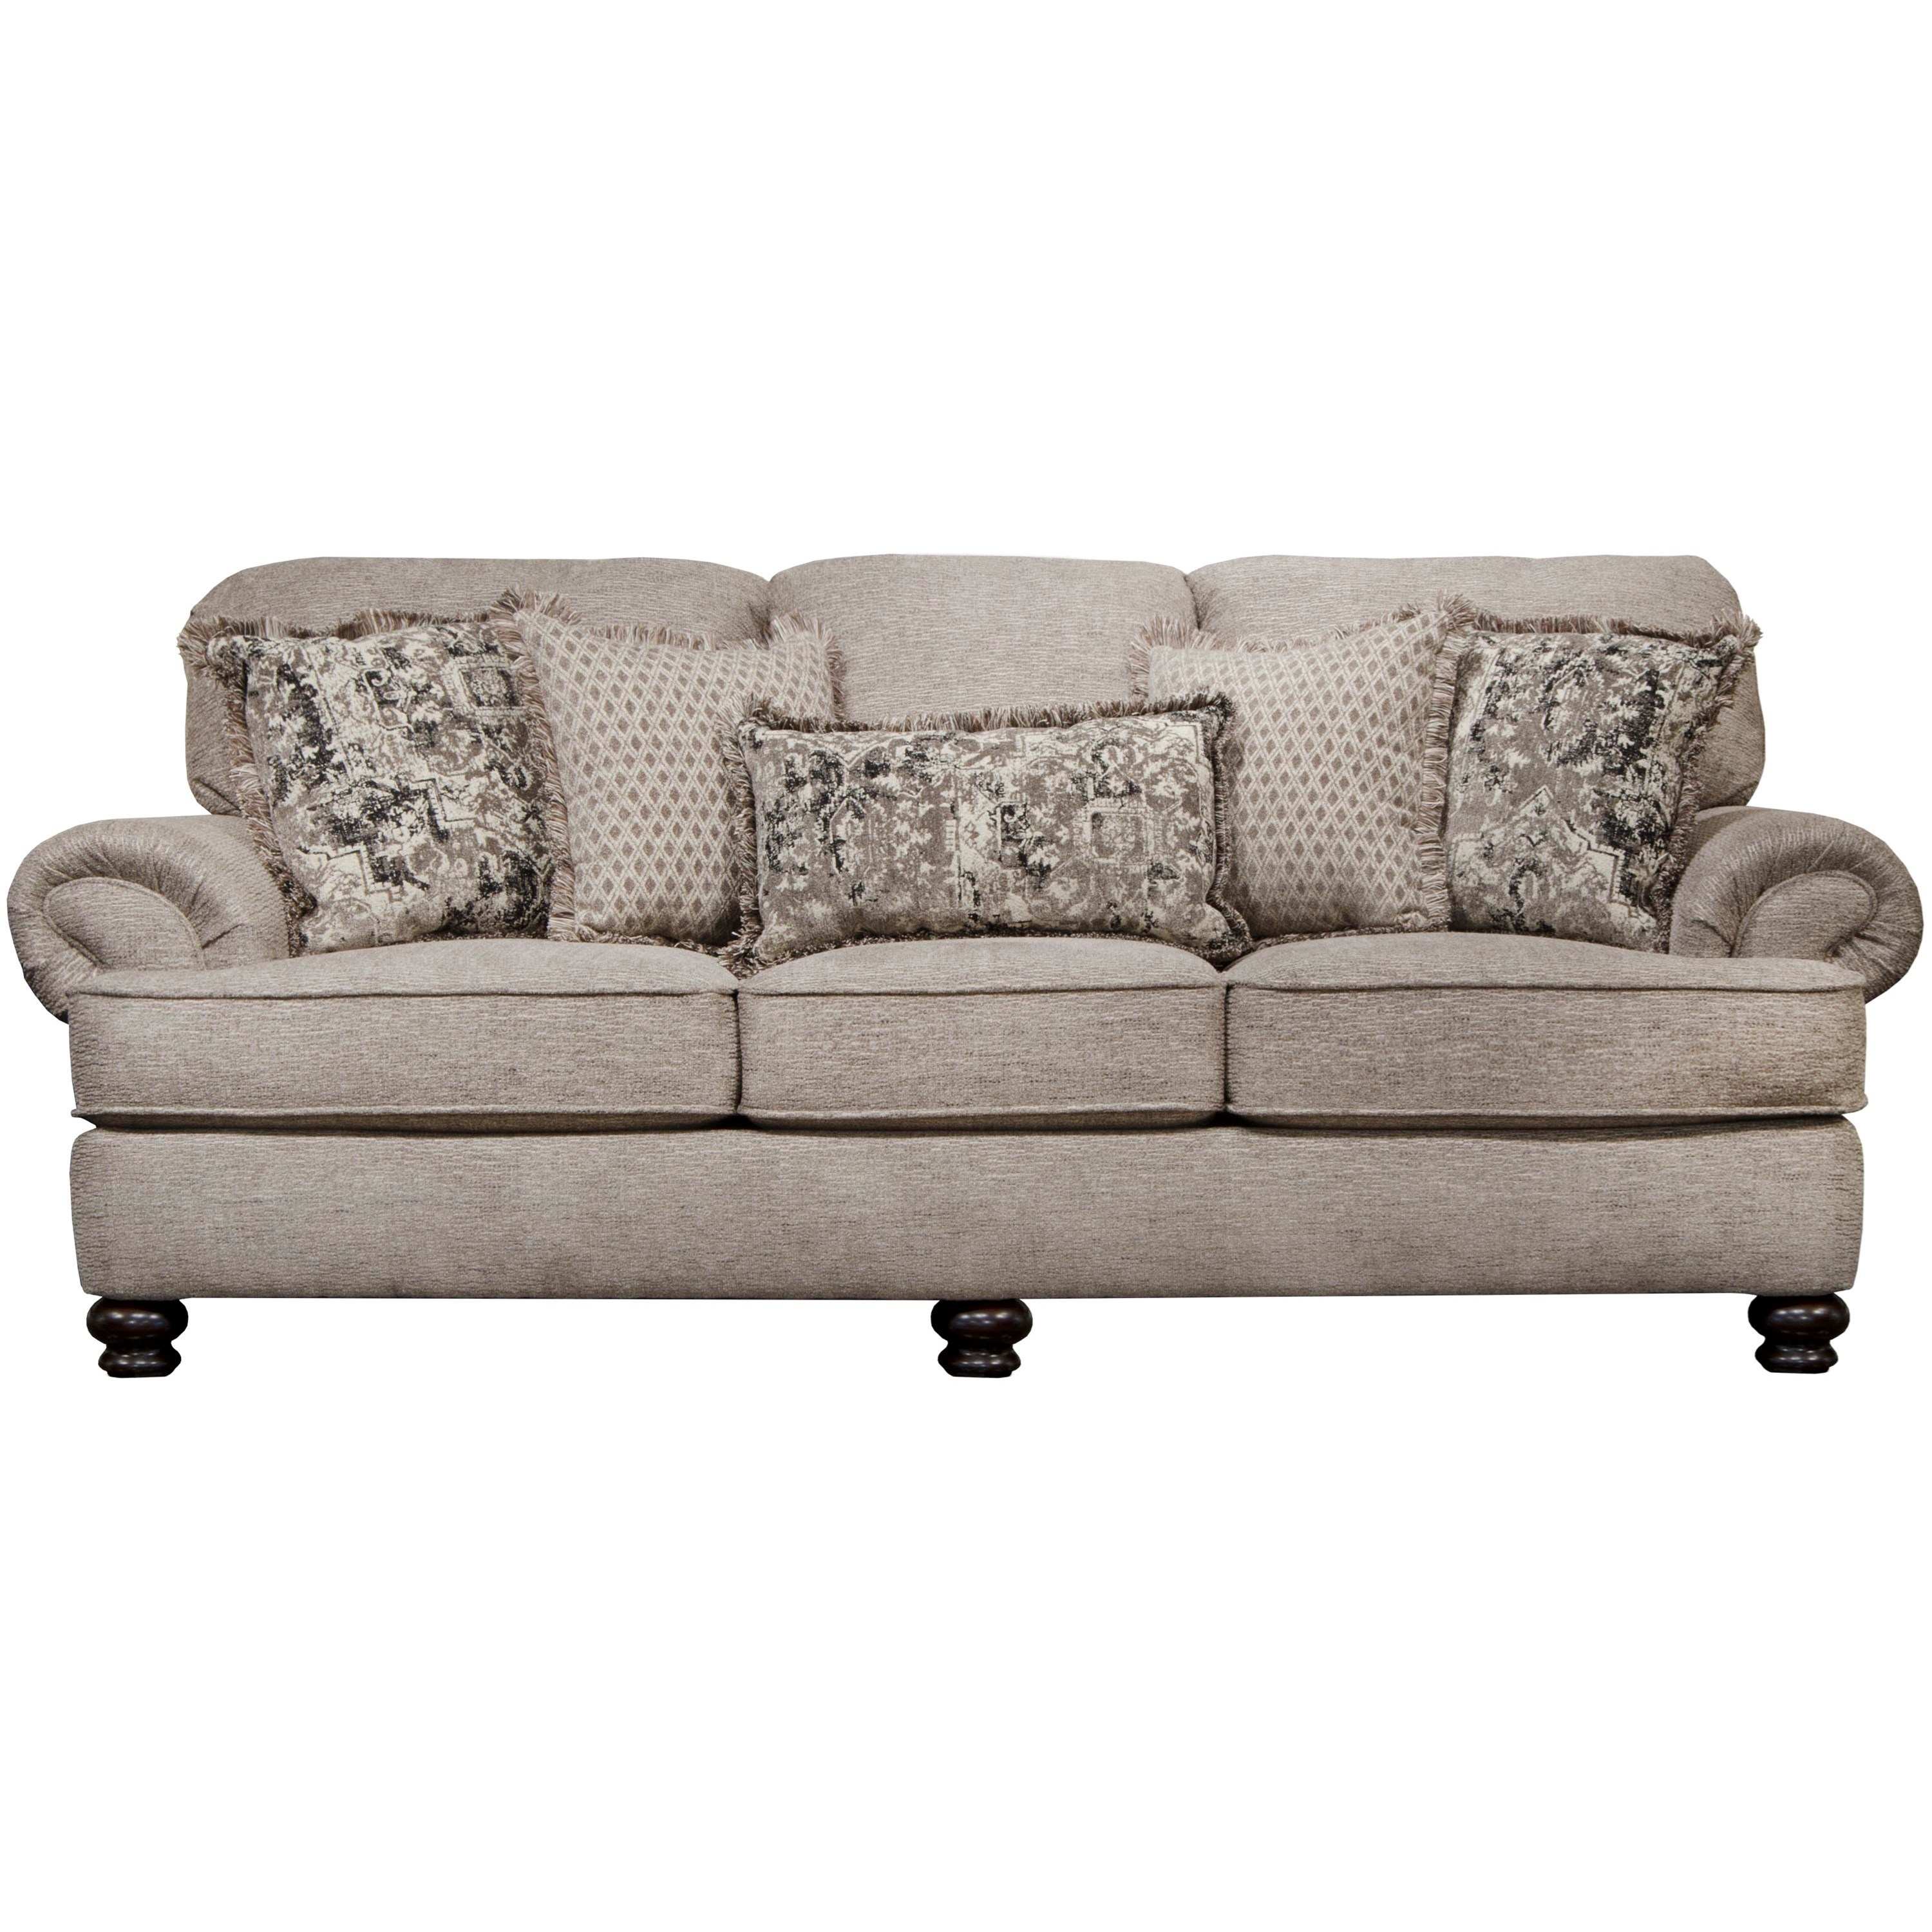 Freemont Sofa by Jackson Furniture at Northeast Factory Direct